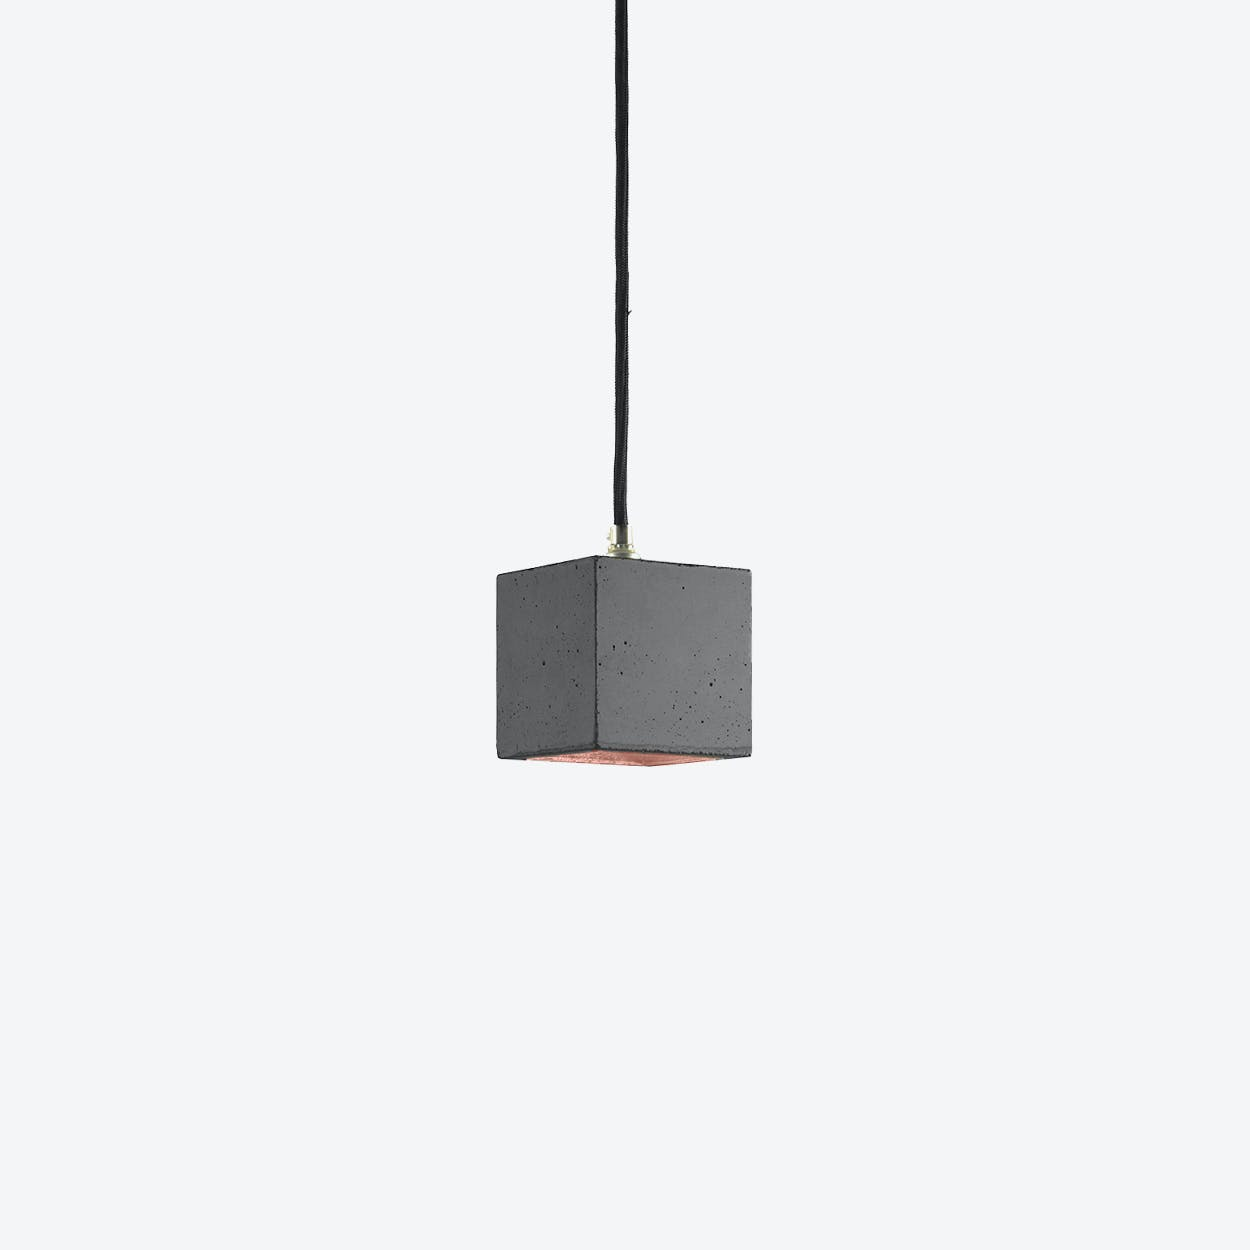 Image of: Concrete Pendant Light Cubic Small B6 In Dark Grey And Copper By Gantlights Fy